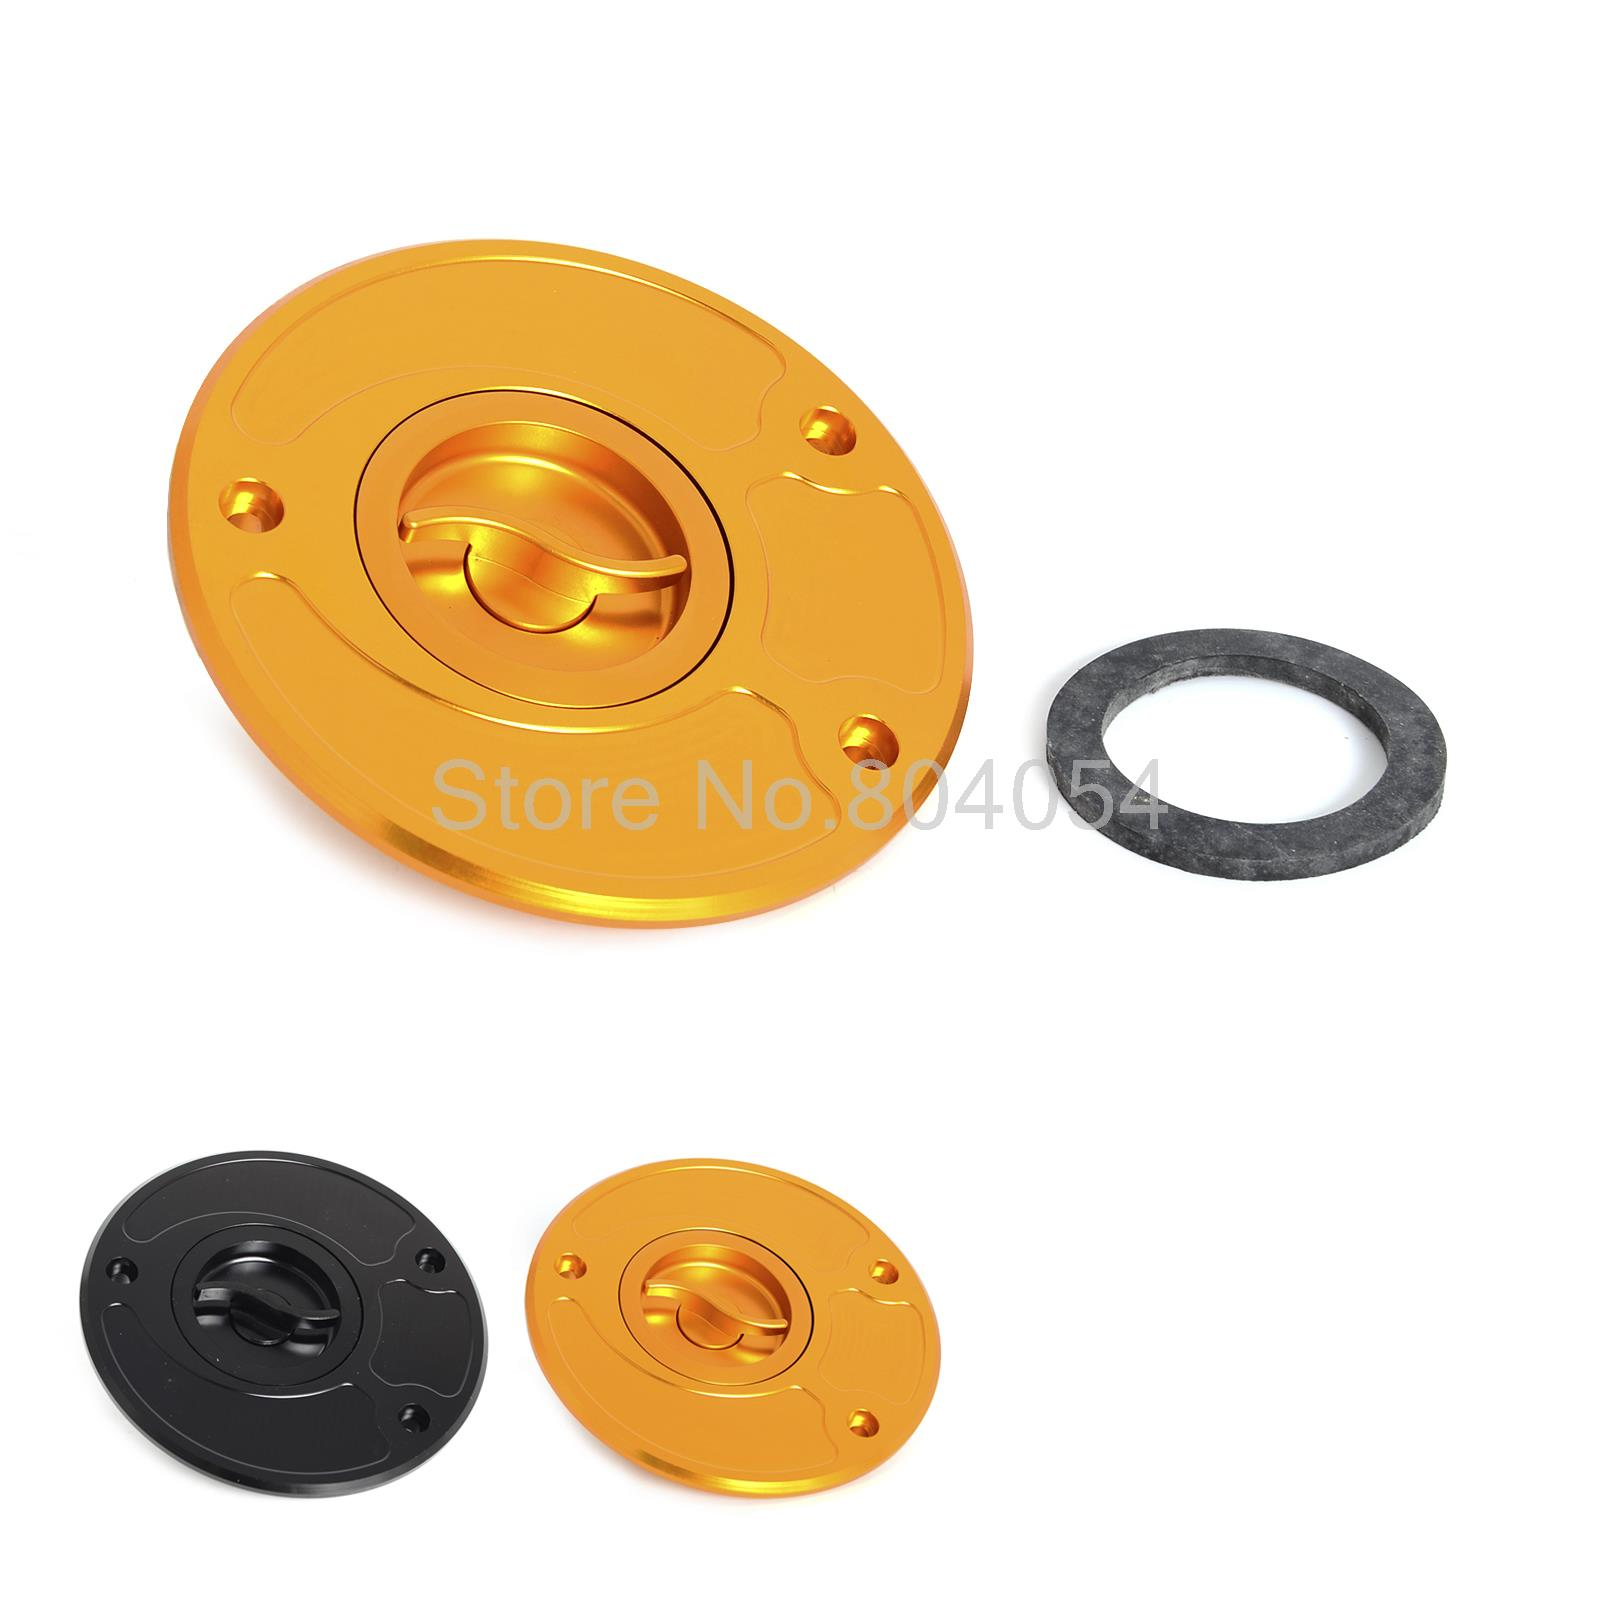 Aluminum Fuel Gas Cap Anodized Fit For Kawasaki Zx6r Zx10r Zx14r 20012006 Round Pin Car Stereo Fascia Surround Wiring Fitting Kit Er6f N Versys 650 Z750 R Z800 Z1000